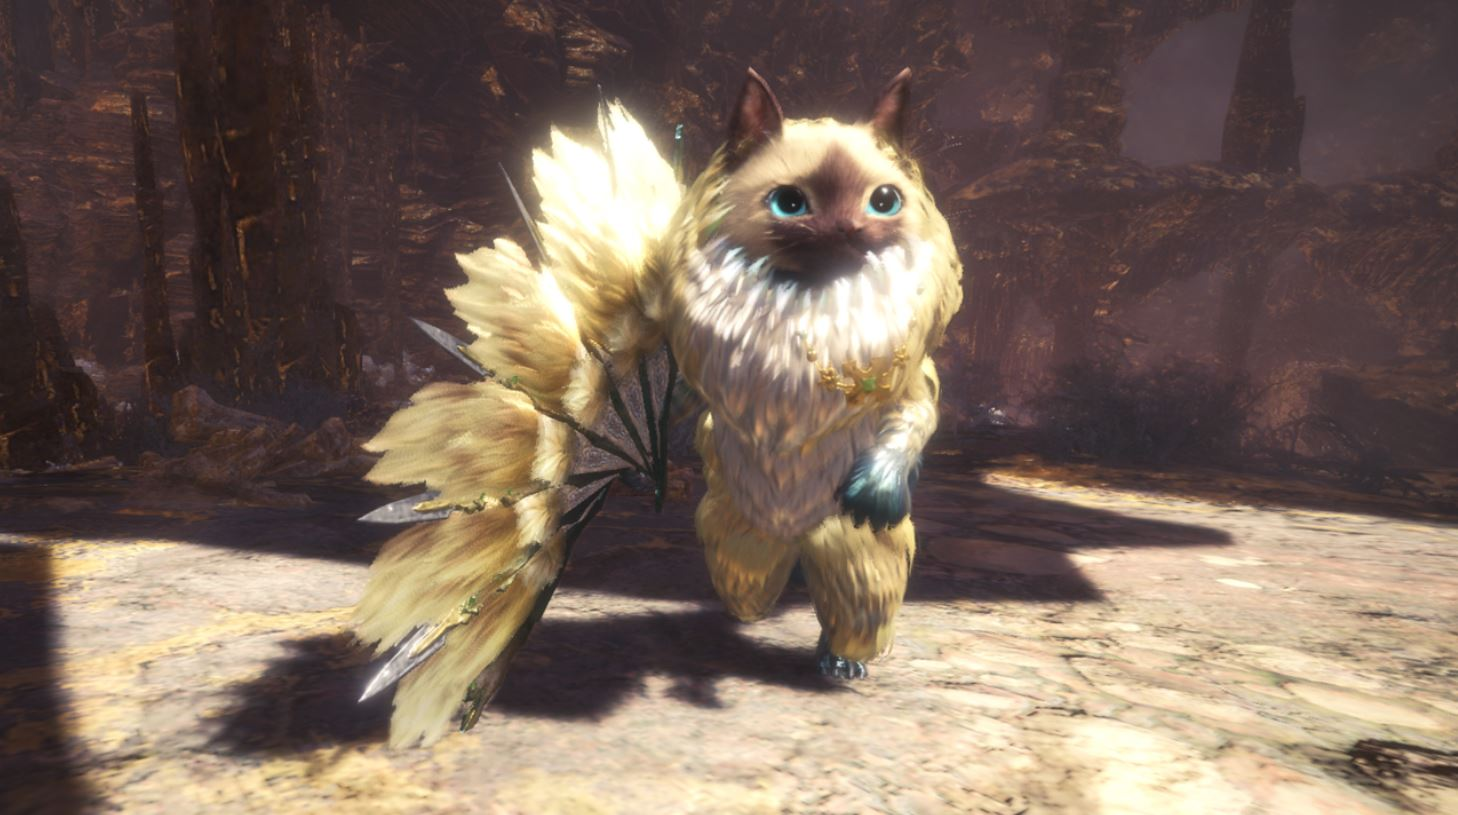 Monster-Hunter-World-Palico-Kulve-Taroth